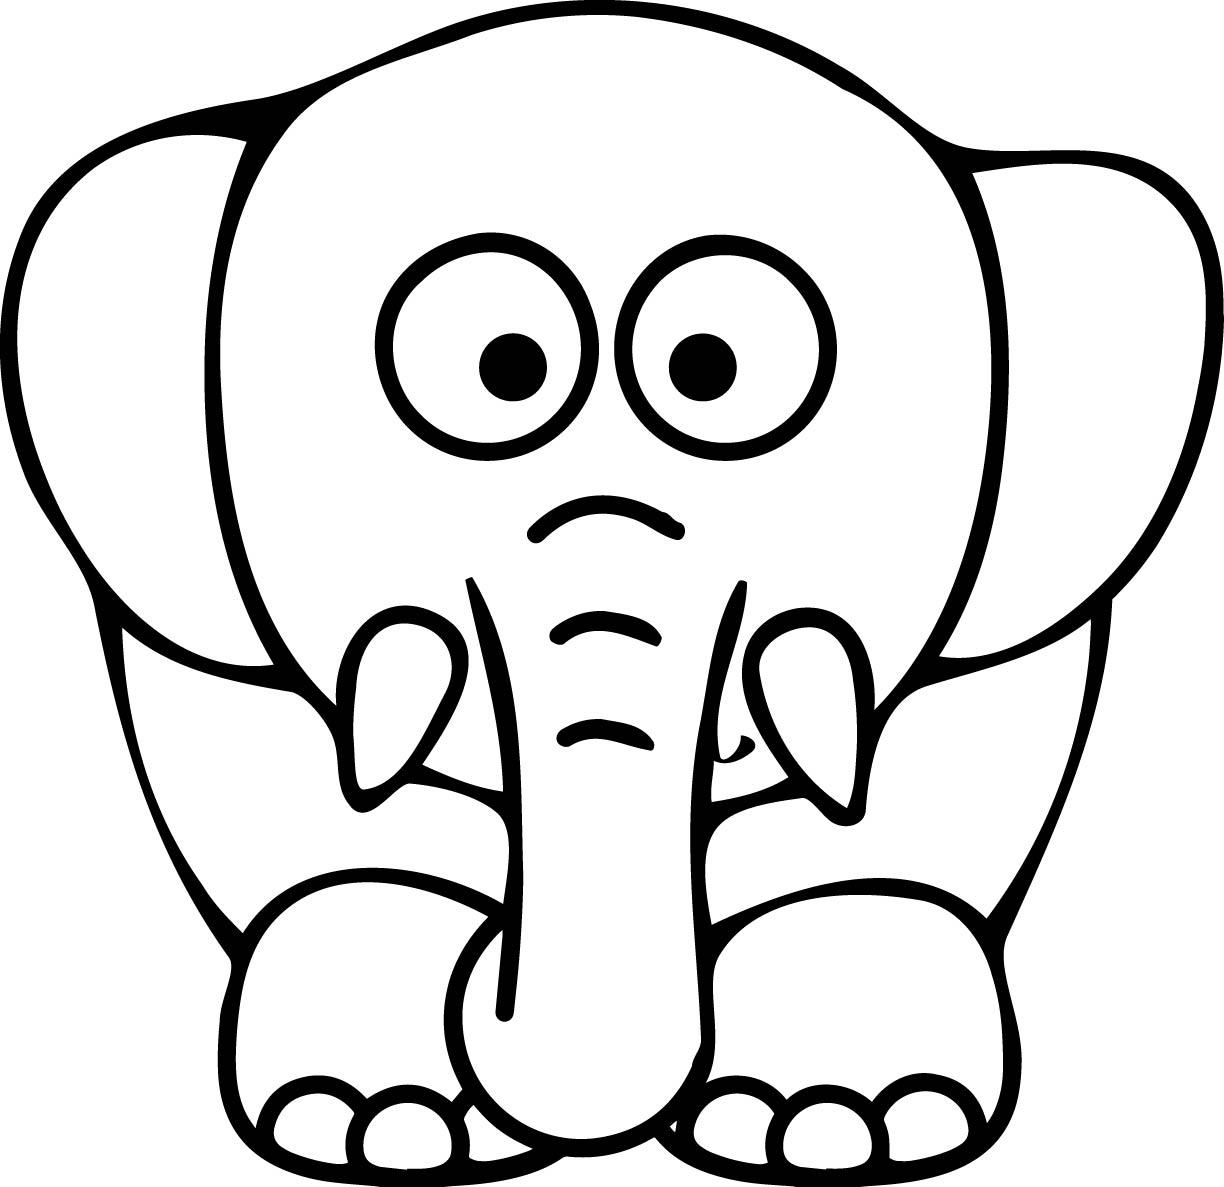 1224x1187 Fresh Elephant Coloring Page On Books Free Animals Pages For